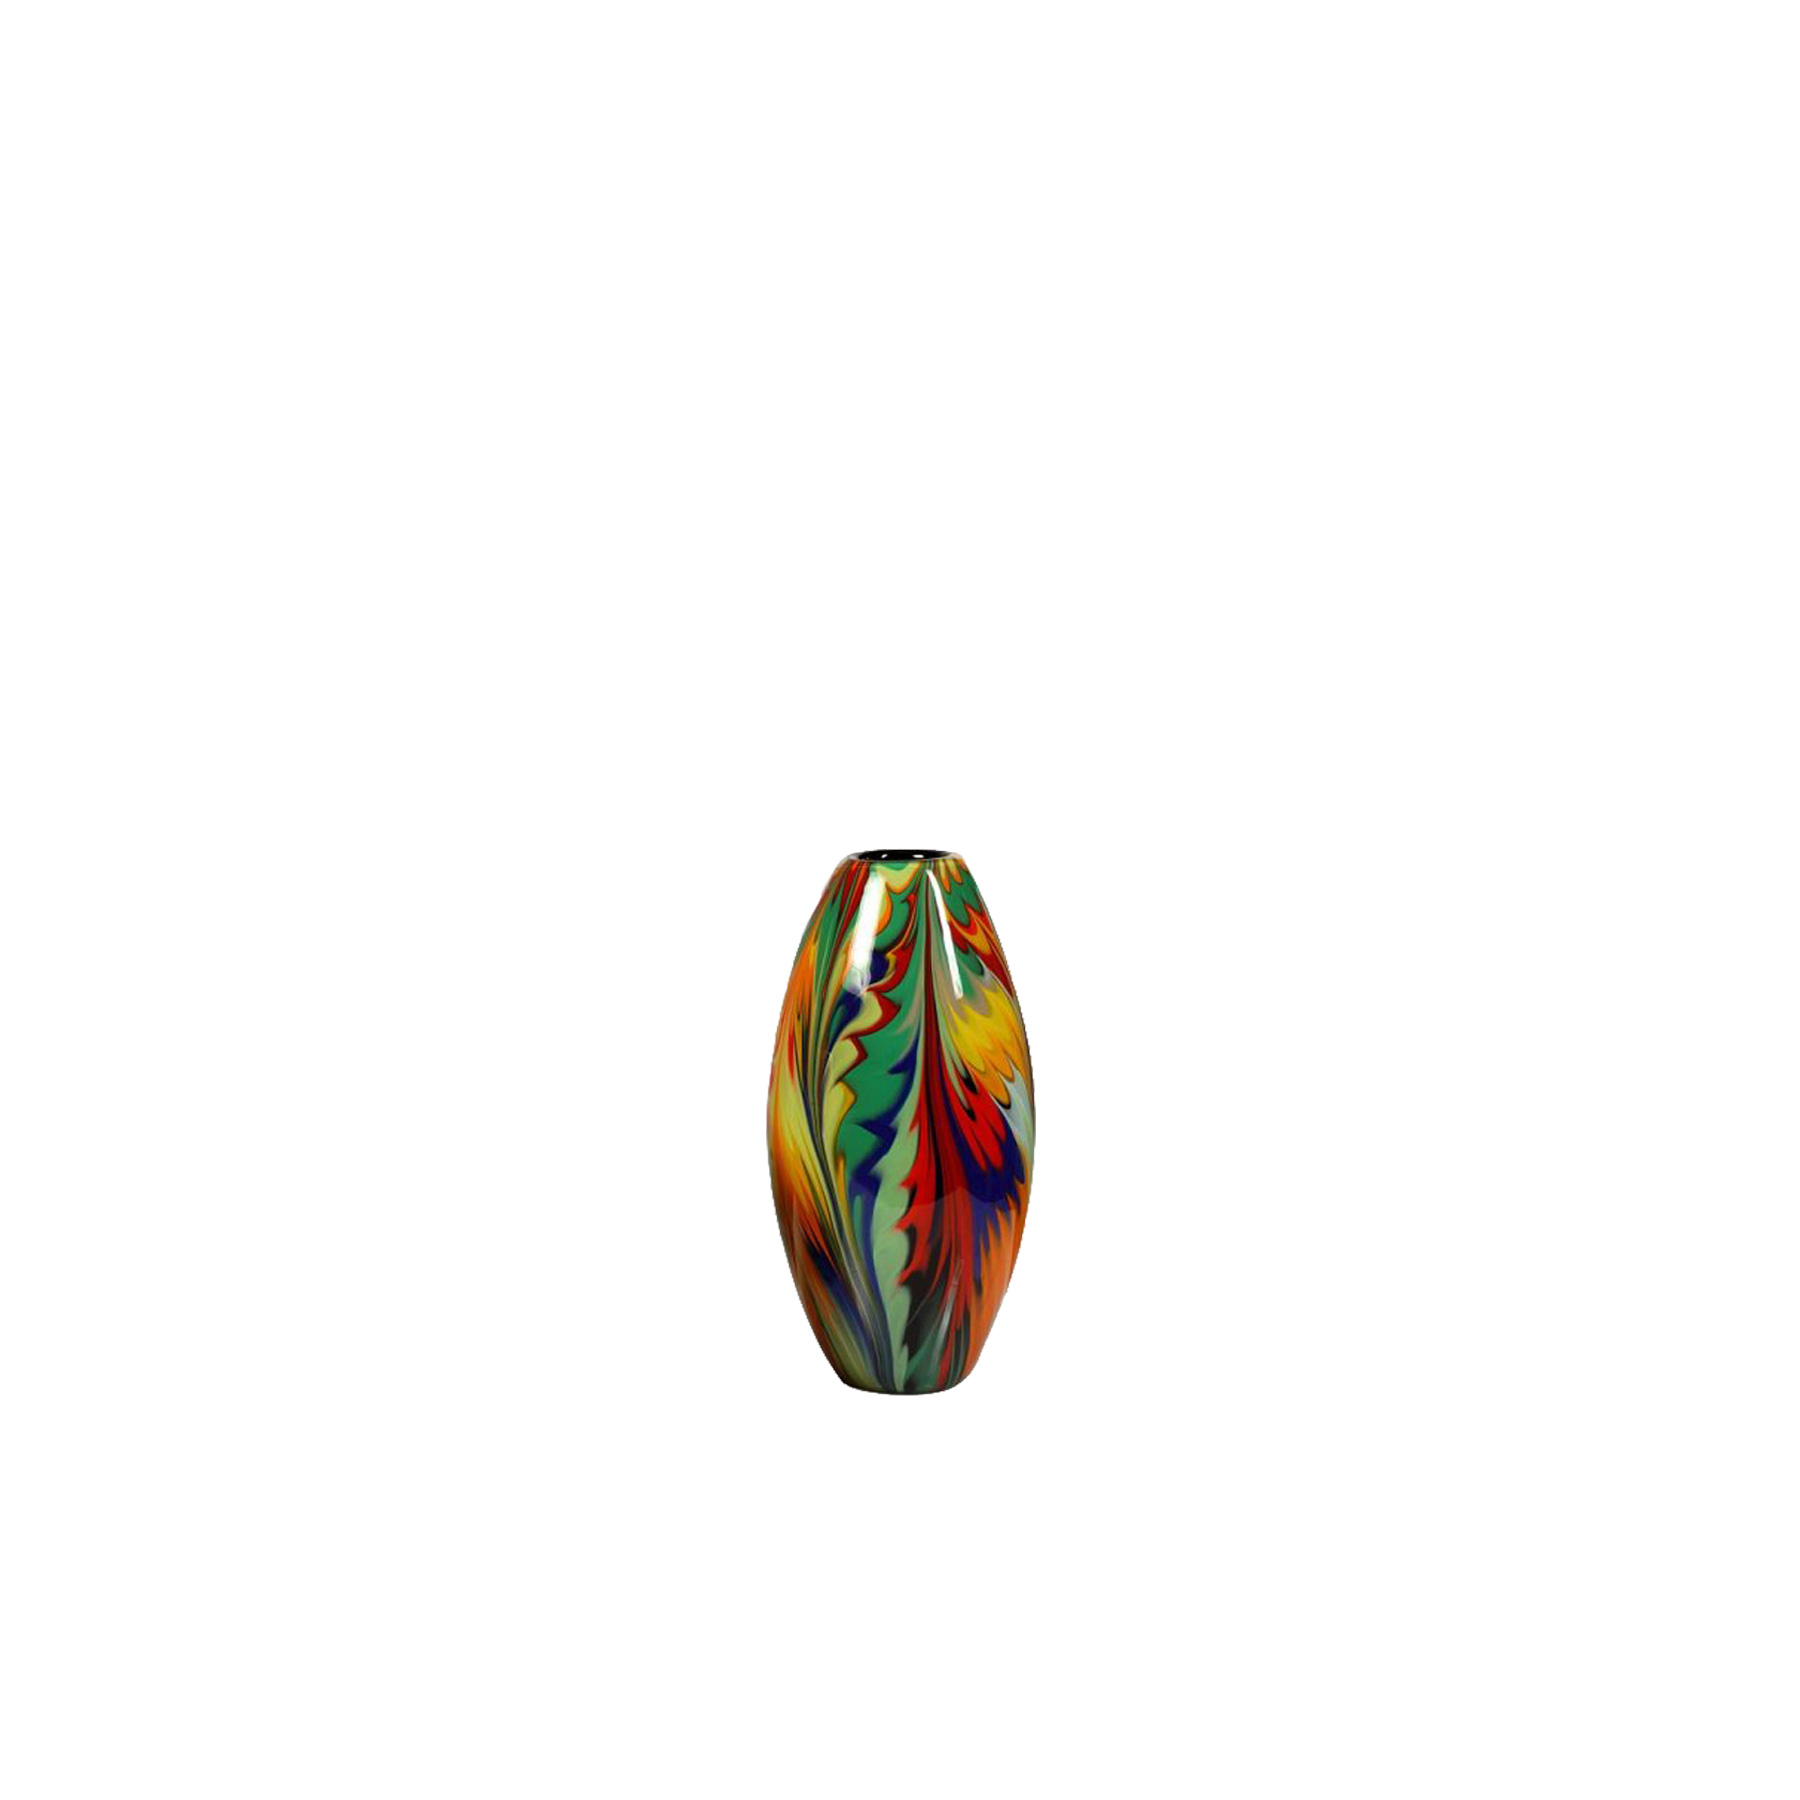 Giungla Olive Vase - Part of the Giungla 'Jungle' Collection, his colourful vase is a dynamic statement piece that will enliven any minimalist or post-modern interior decor. Made of Murano glass through the ancient Cane technique, where cane refers to rods of glass, which can be simple and contain single colour, or complex and contain strands of one or several colours creating a pattern. Used as a centrepiece on a console, side table, or dining table, this piece will add a note of joy and colour to any decor.